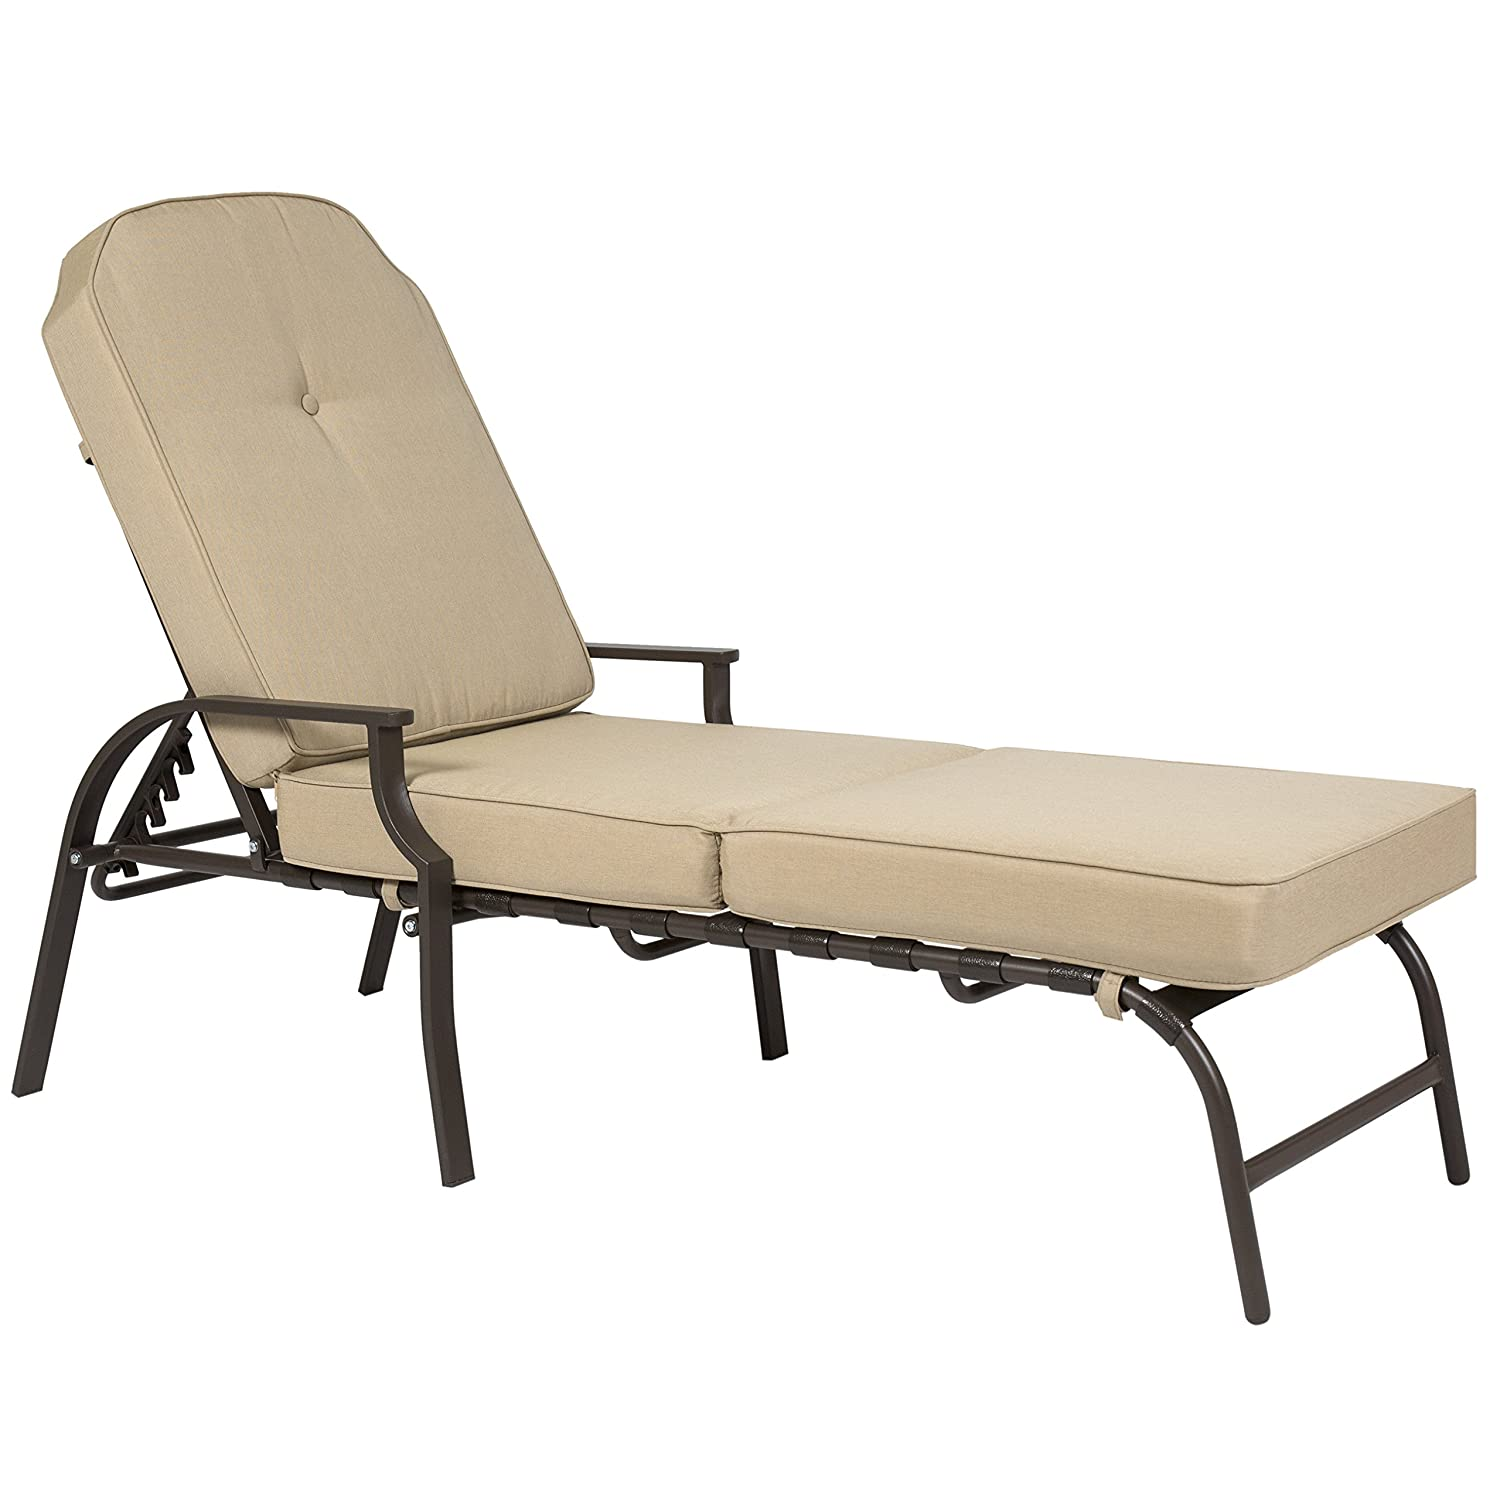 Amazon.com  Best Choice Products Outdoor Chaise Lounge Chair W/ Cushion Pool Patio Furniture Beige  Garden u0026 Outdoor  sc 1 st  Amazon.com : discount chaise lounge - Sectionals, Sofas & Couches